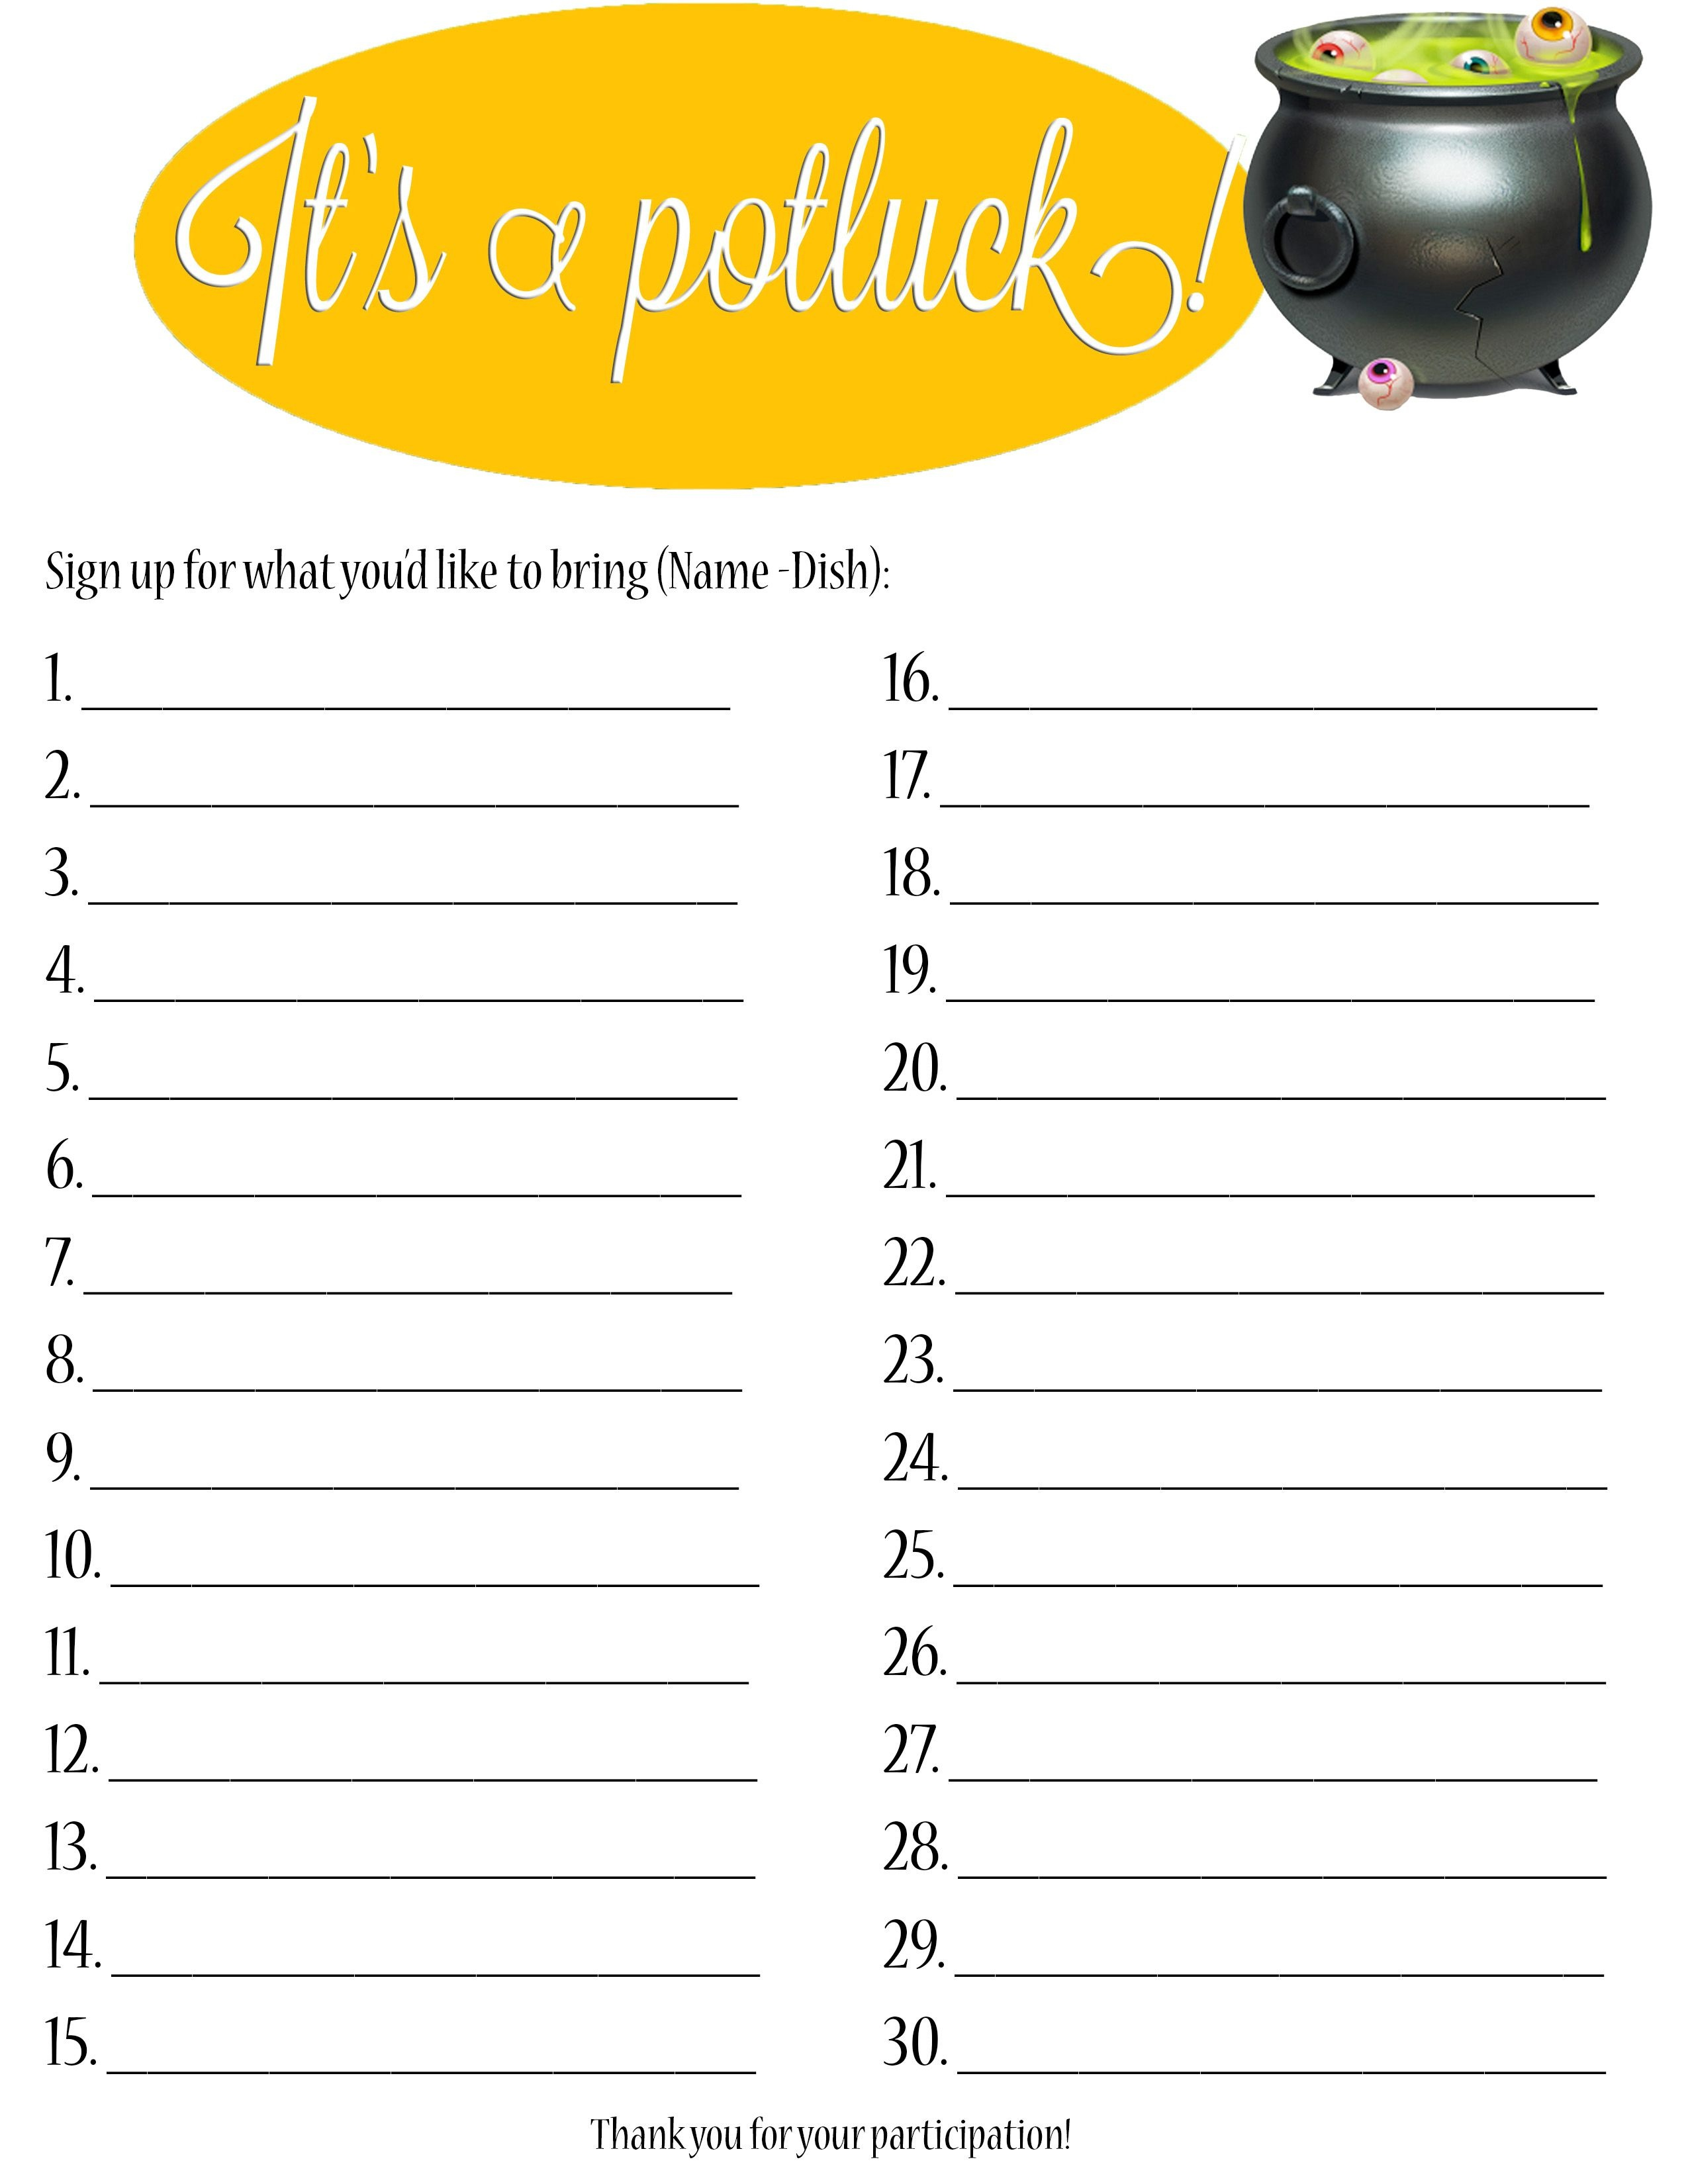 Free Printable Sign Up Sheets For Potlucks